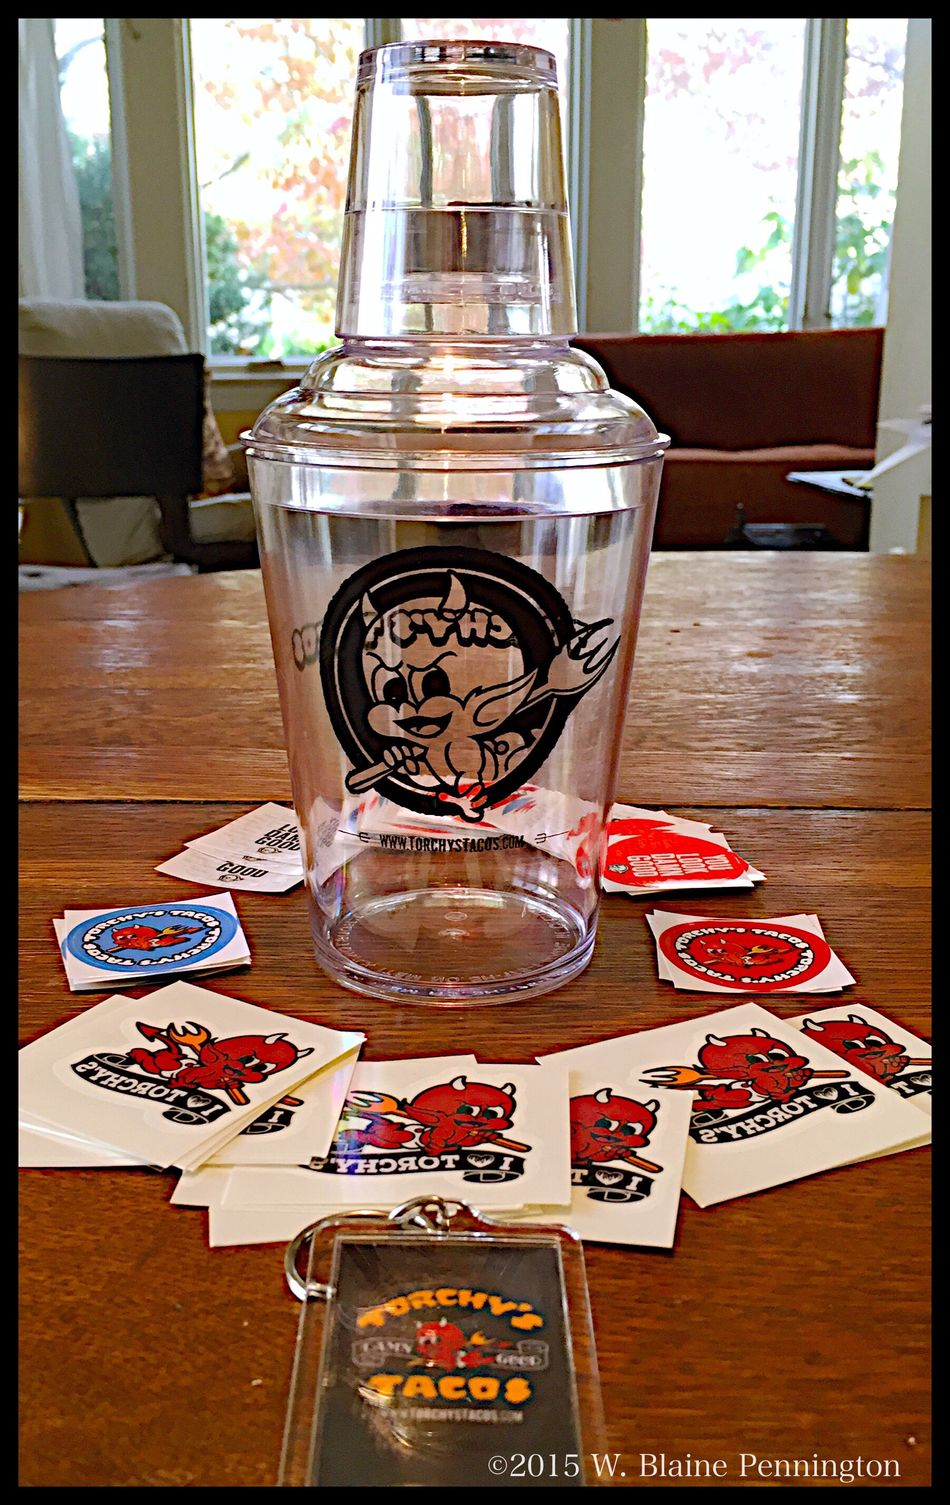 Wow!!! Recently contacted Torchys Atacos and told them how much I loved their food and the cute glasses... Next thing I know I get a box of swag in the mail unexpectedly! Torchys rocks!! Torchy's Taco Torchystacos My Undying Devotion